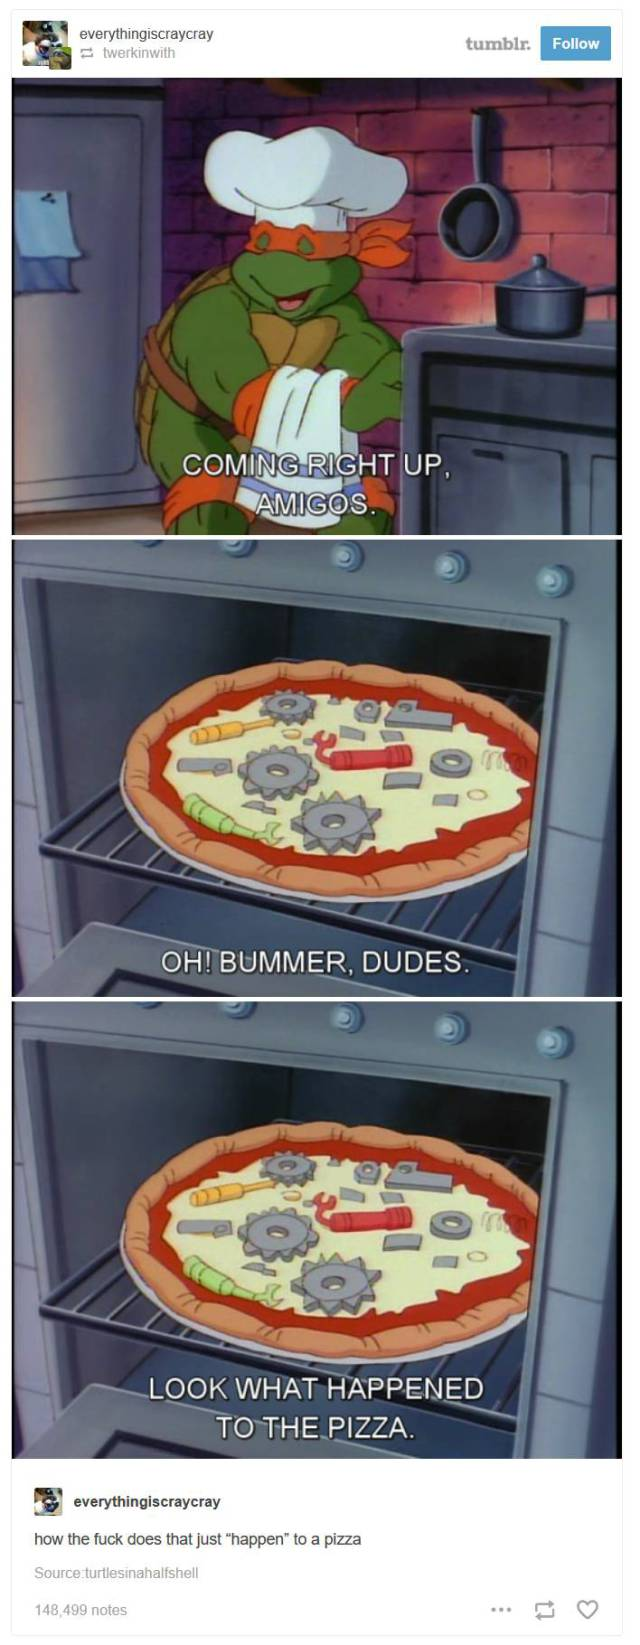 Tumblr Posts About Pizza That Are Absolutely Perfect